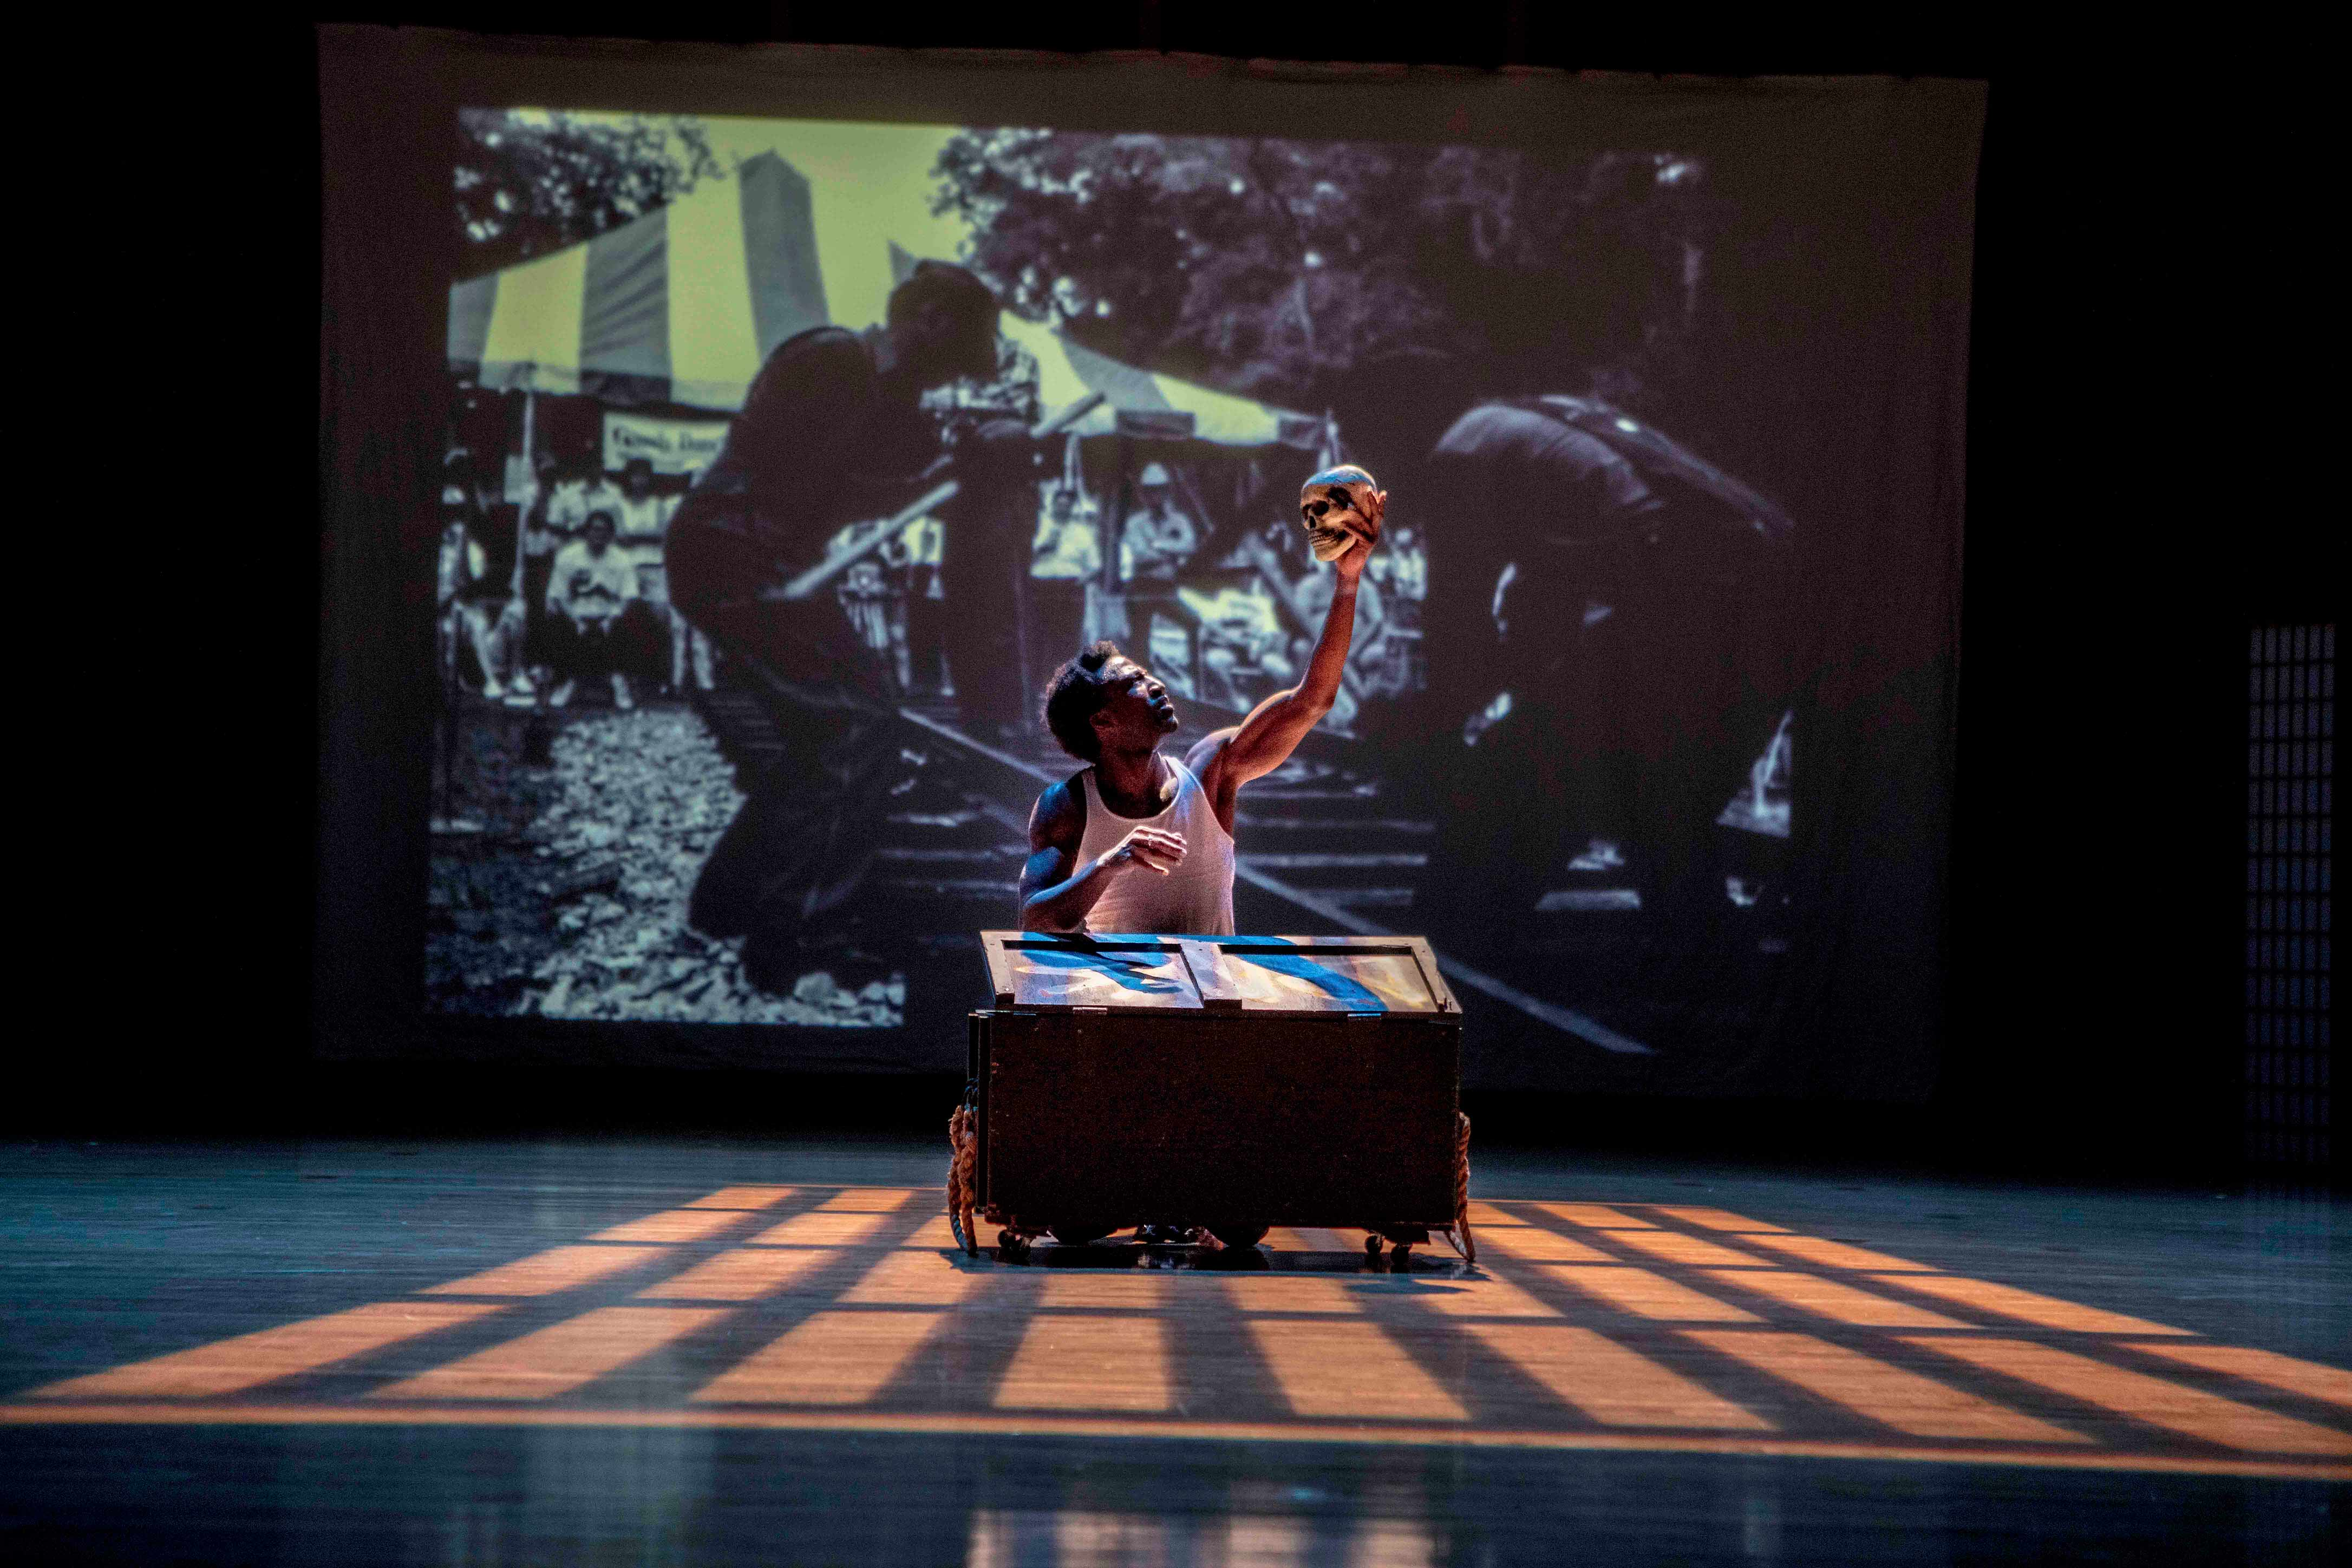 """Semi-professional dance group Dance Diaspora will perform """"Black Love: The Incarceration of the Spirit"""" this weekend, their last show before founder Adenike Sharpley's retirement."""